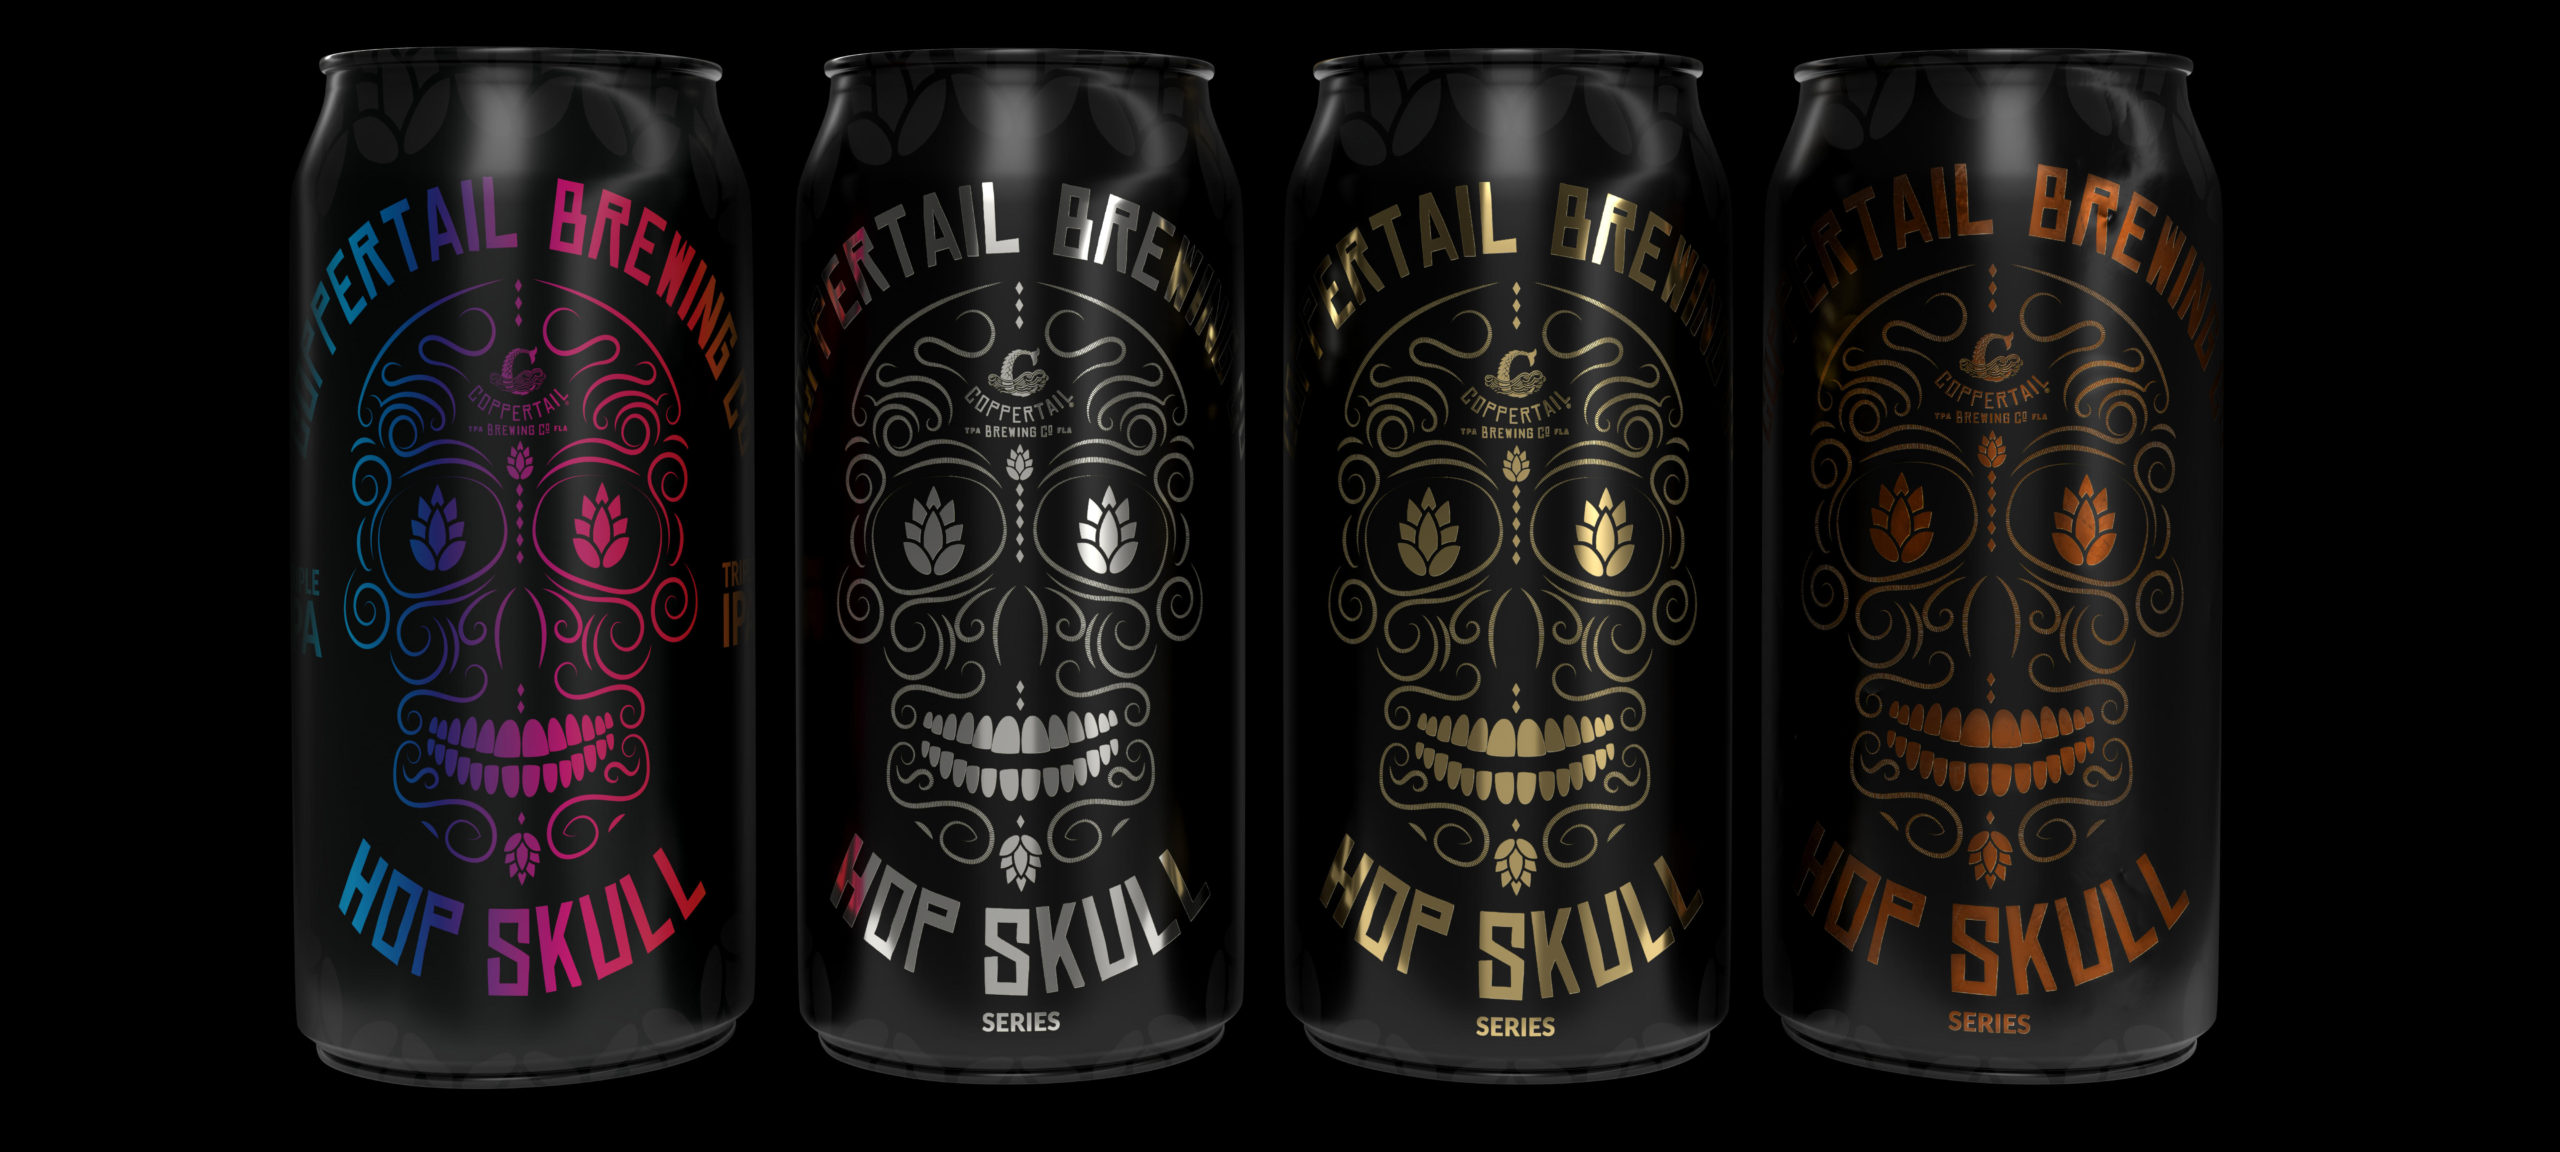 Coppertail Brewing Hop Skull Series Pics